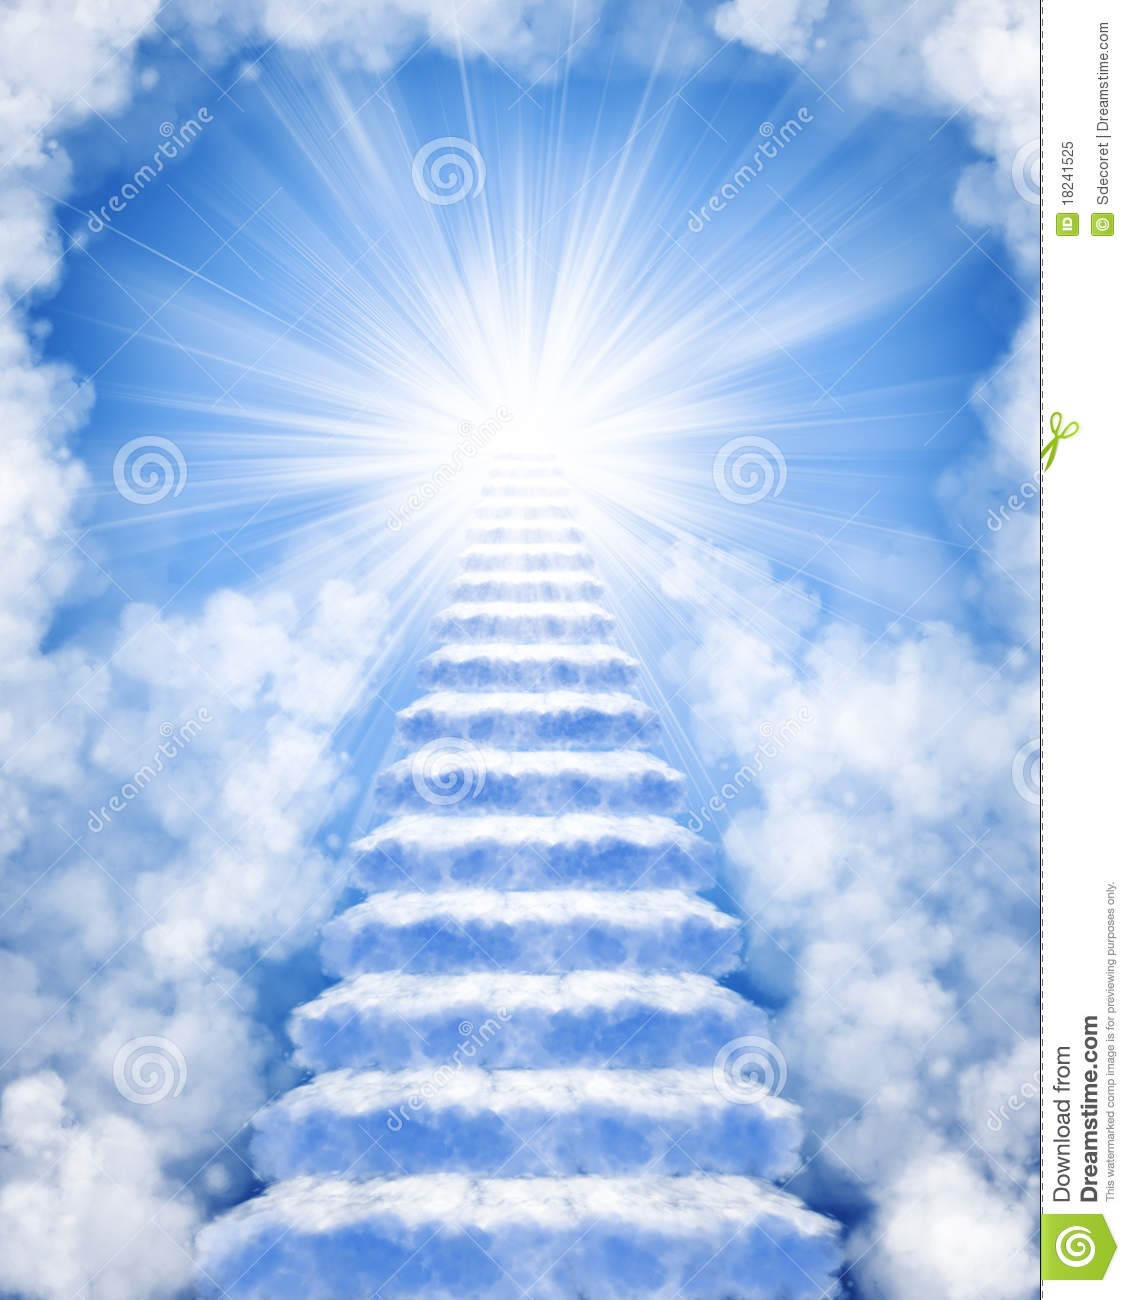 Worksheet What Clouds Made Of stairs made of clouds to heaven royalty free stock photo image heaven